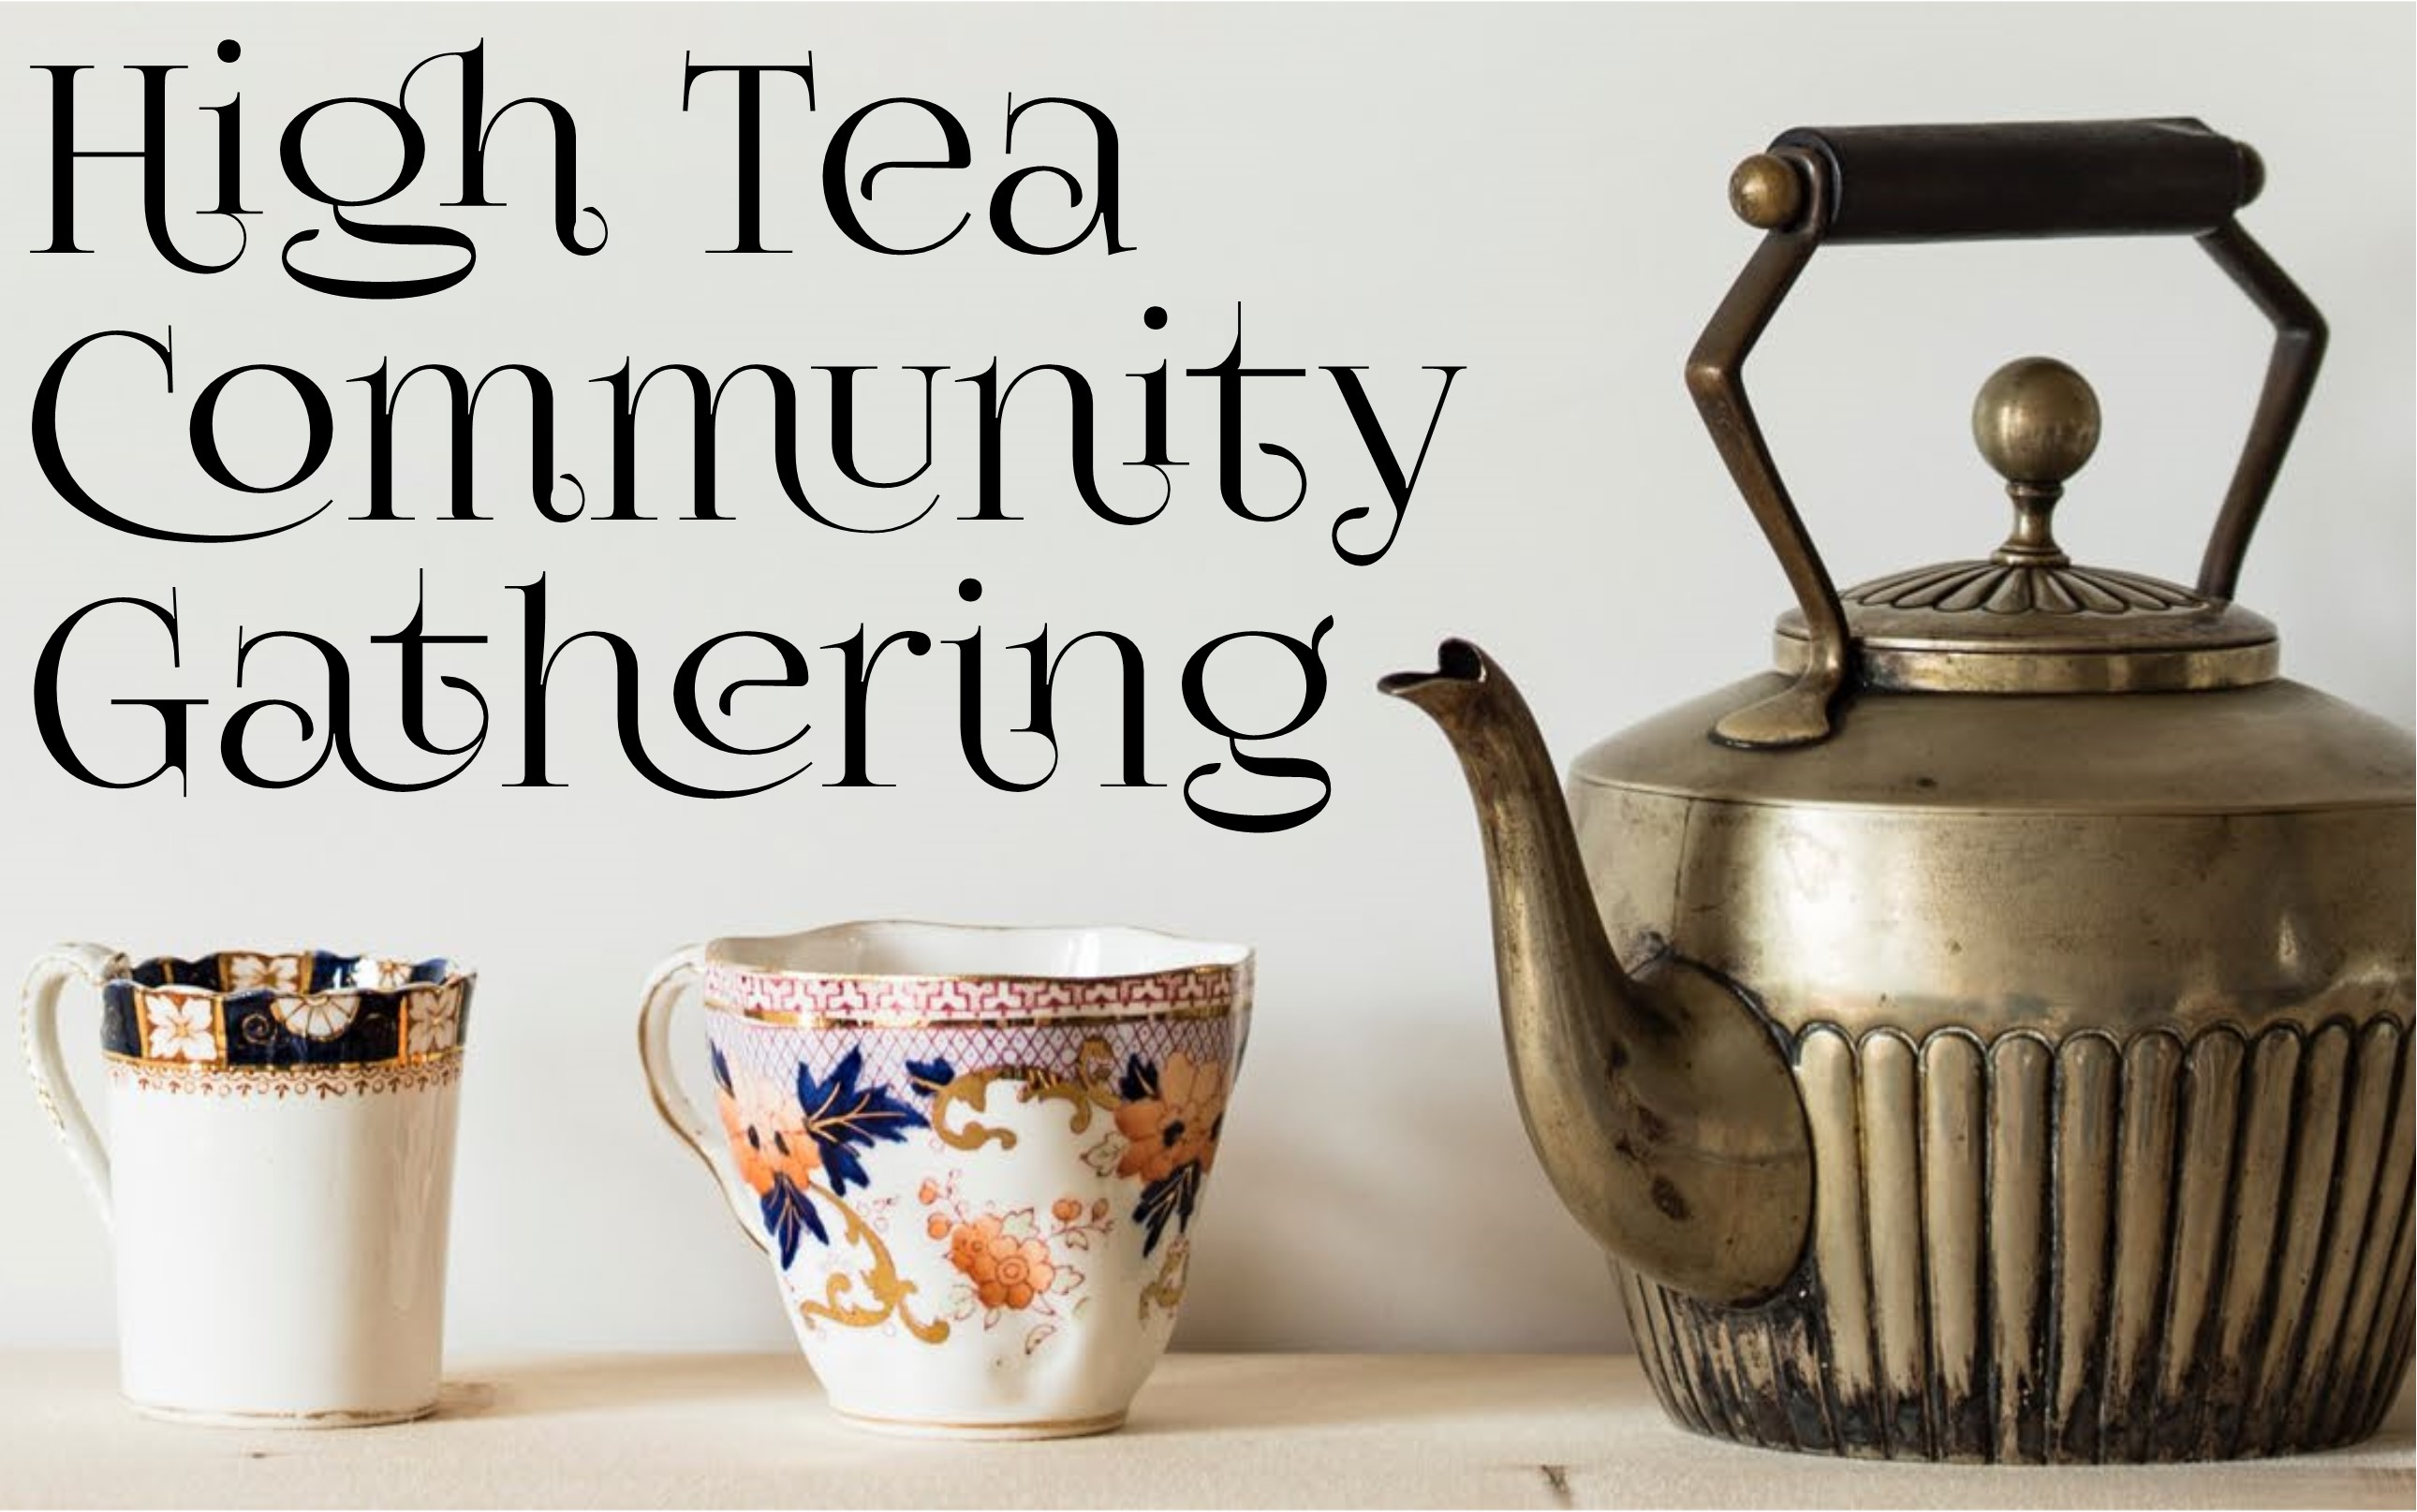 High Tea Community Gathering Image